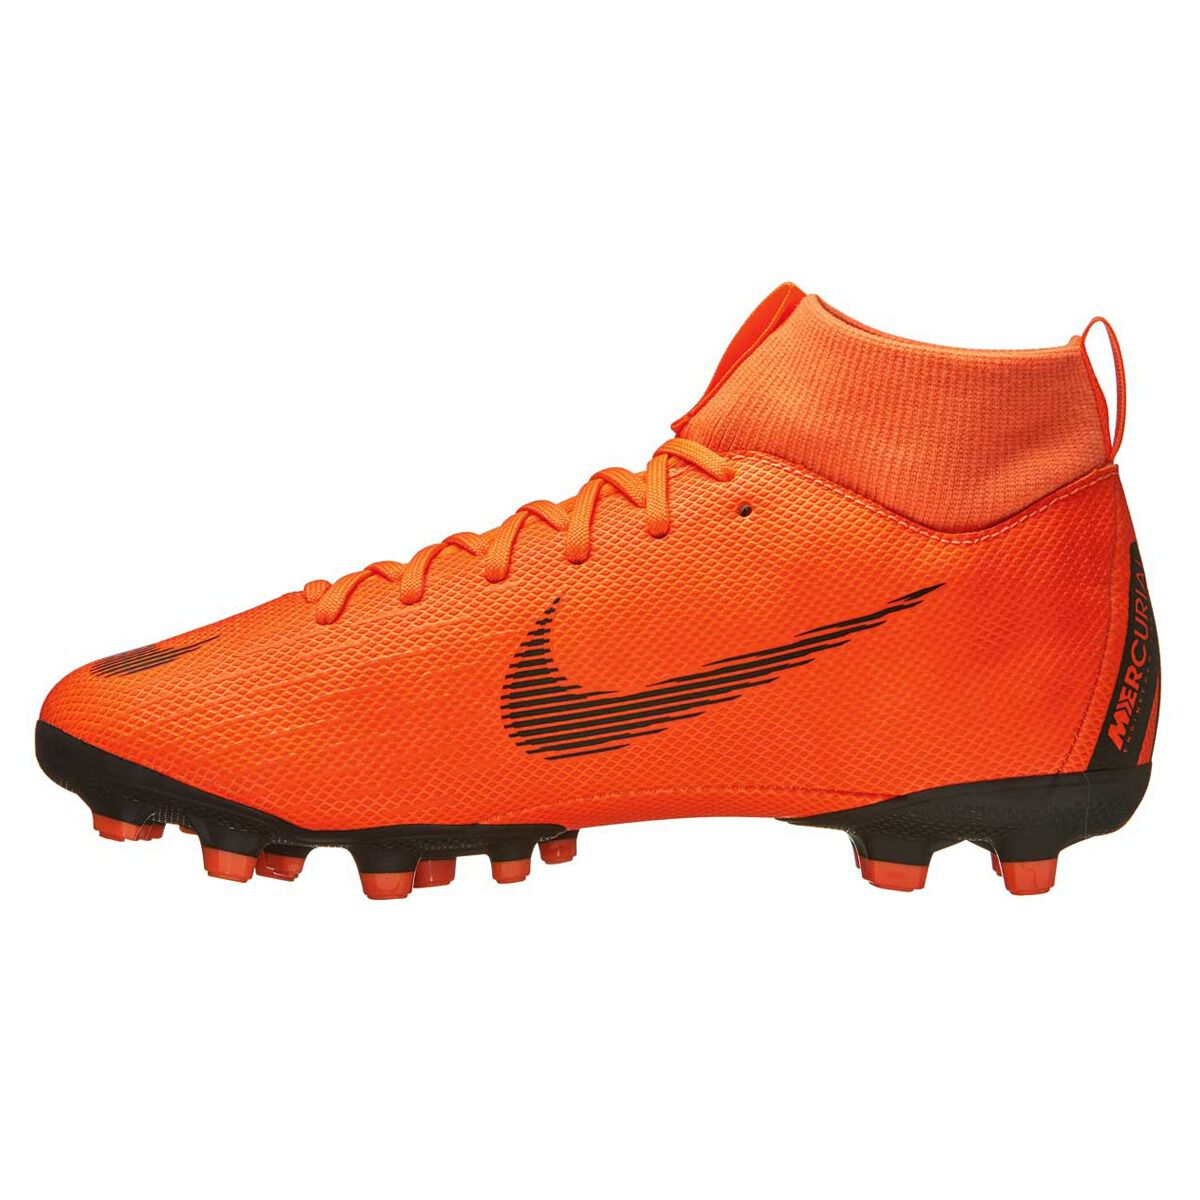 separation shoes 4ef10 46a67 where to buy nike mercurial superfly 4 orange 31841 6b8ba